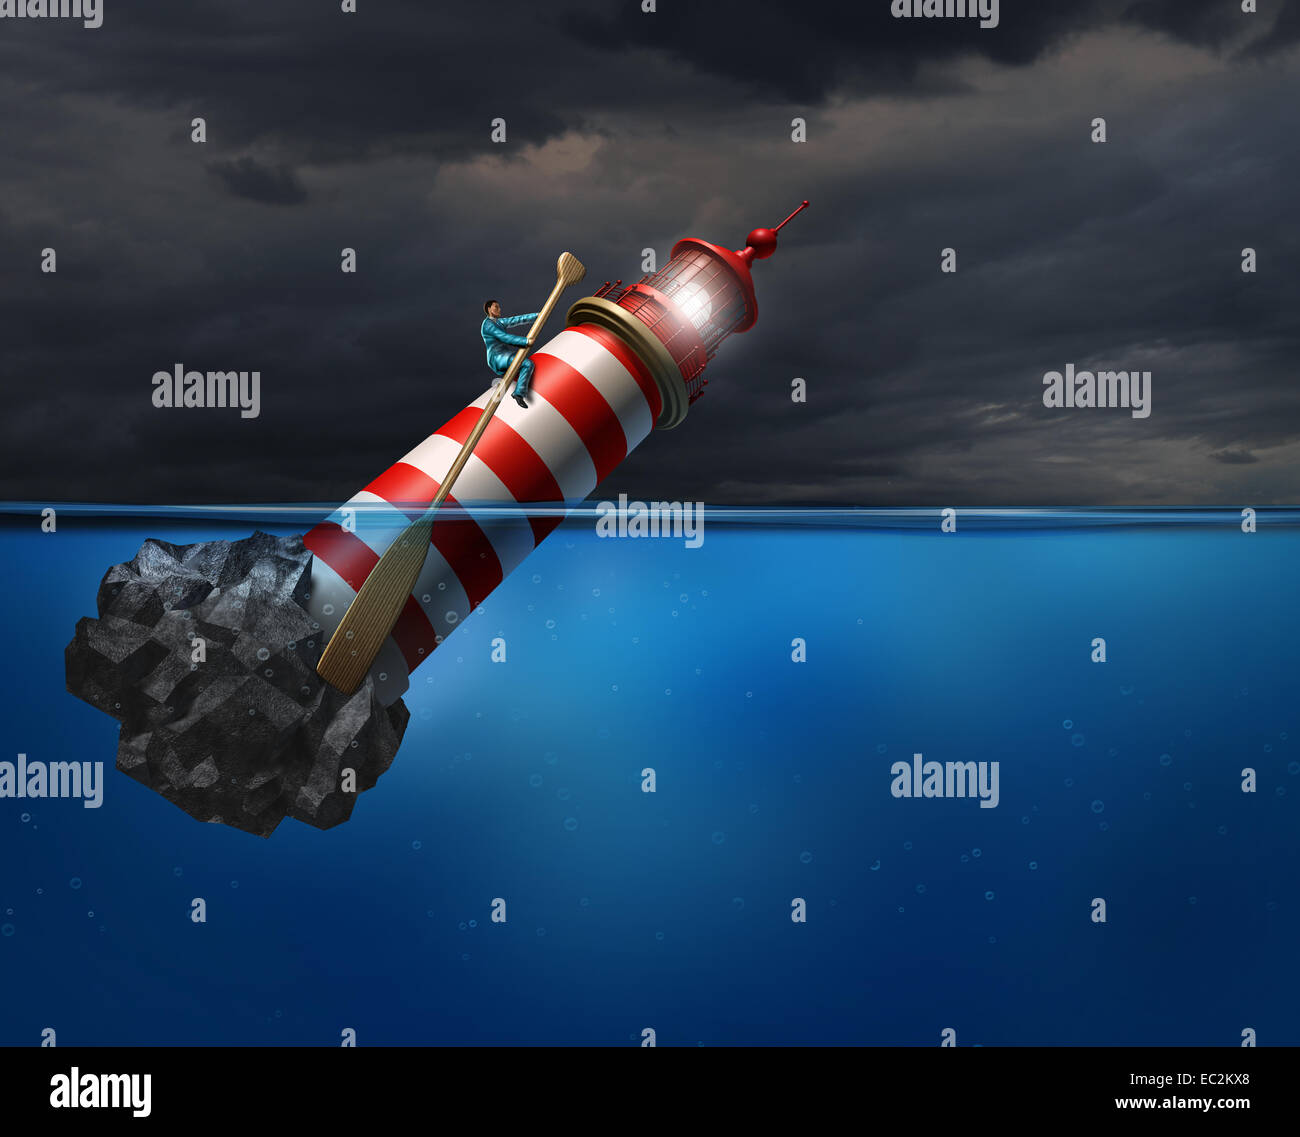 Empower concept as a person using a lighthouse beacon as if it was a oar guiding the business symbol with an oar - Stock Image